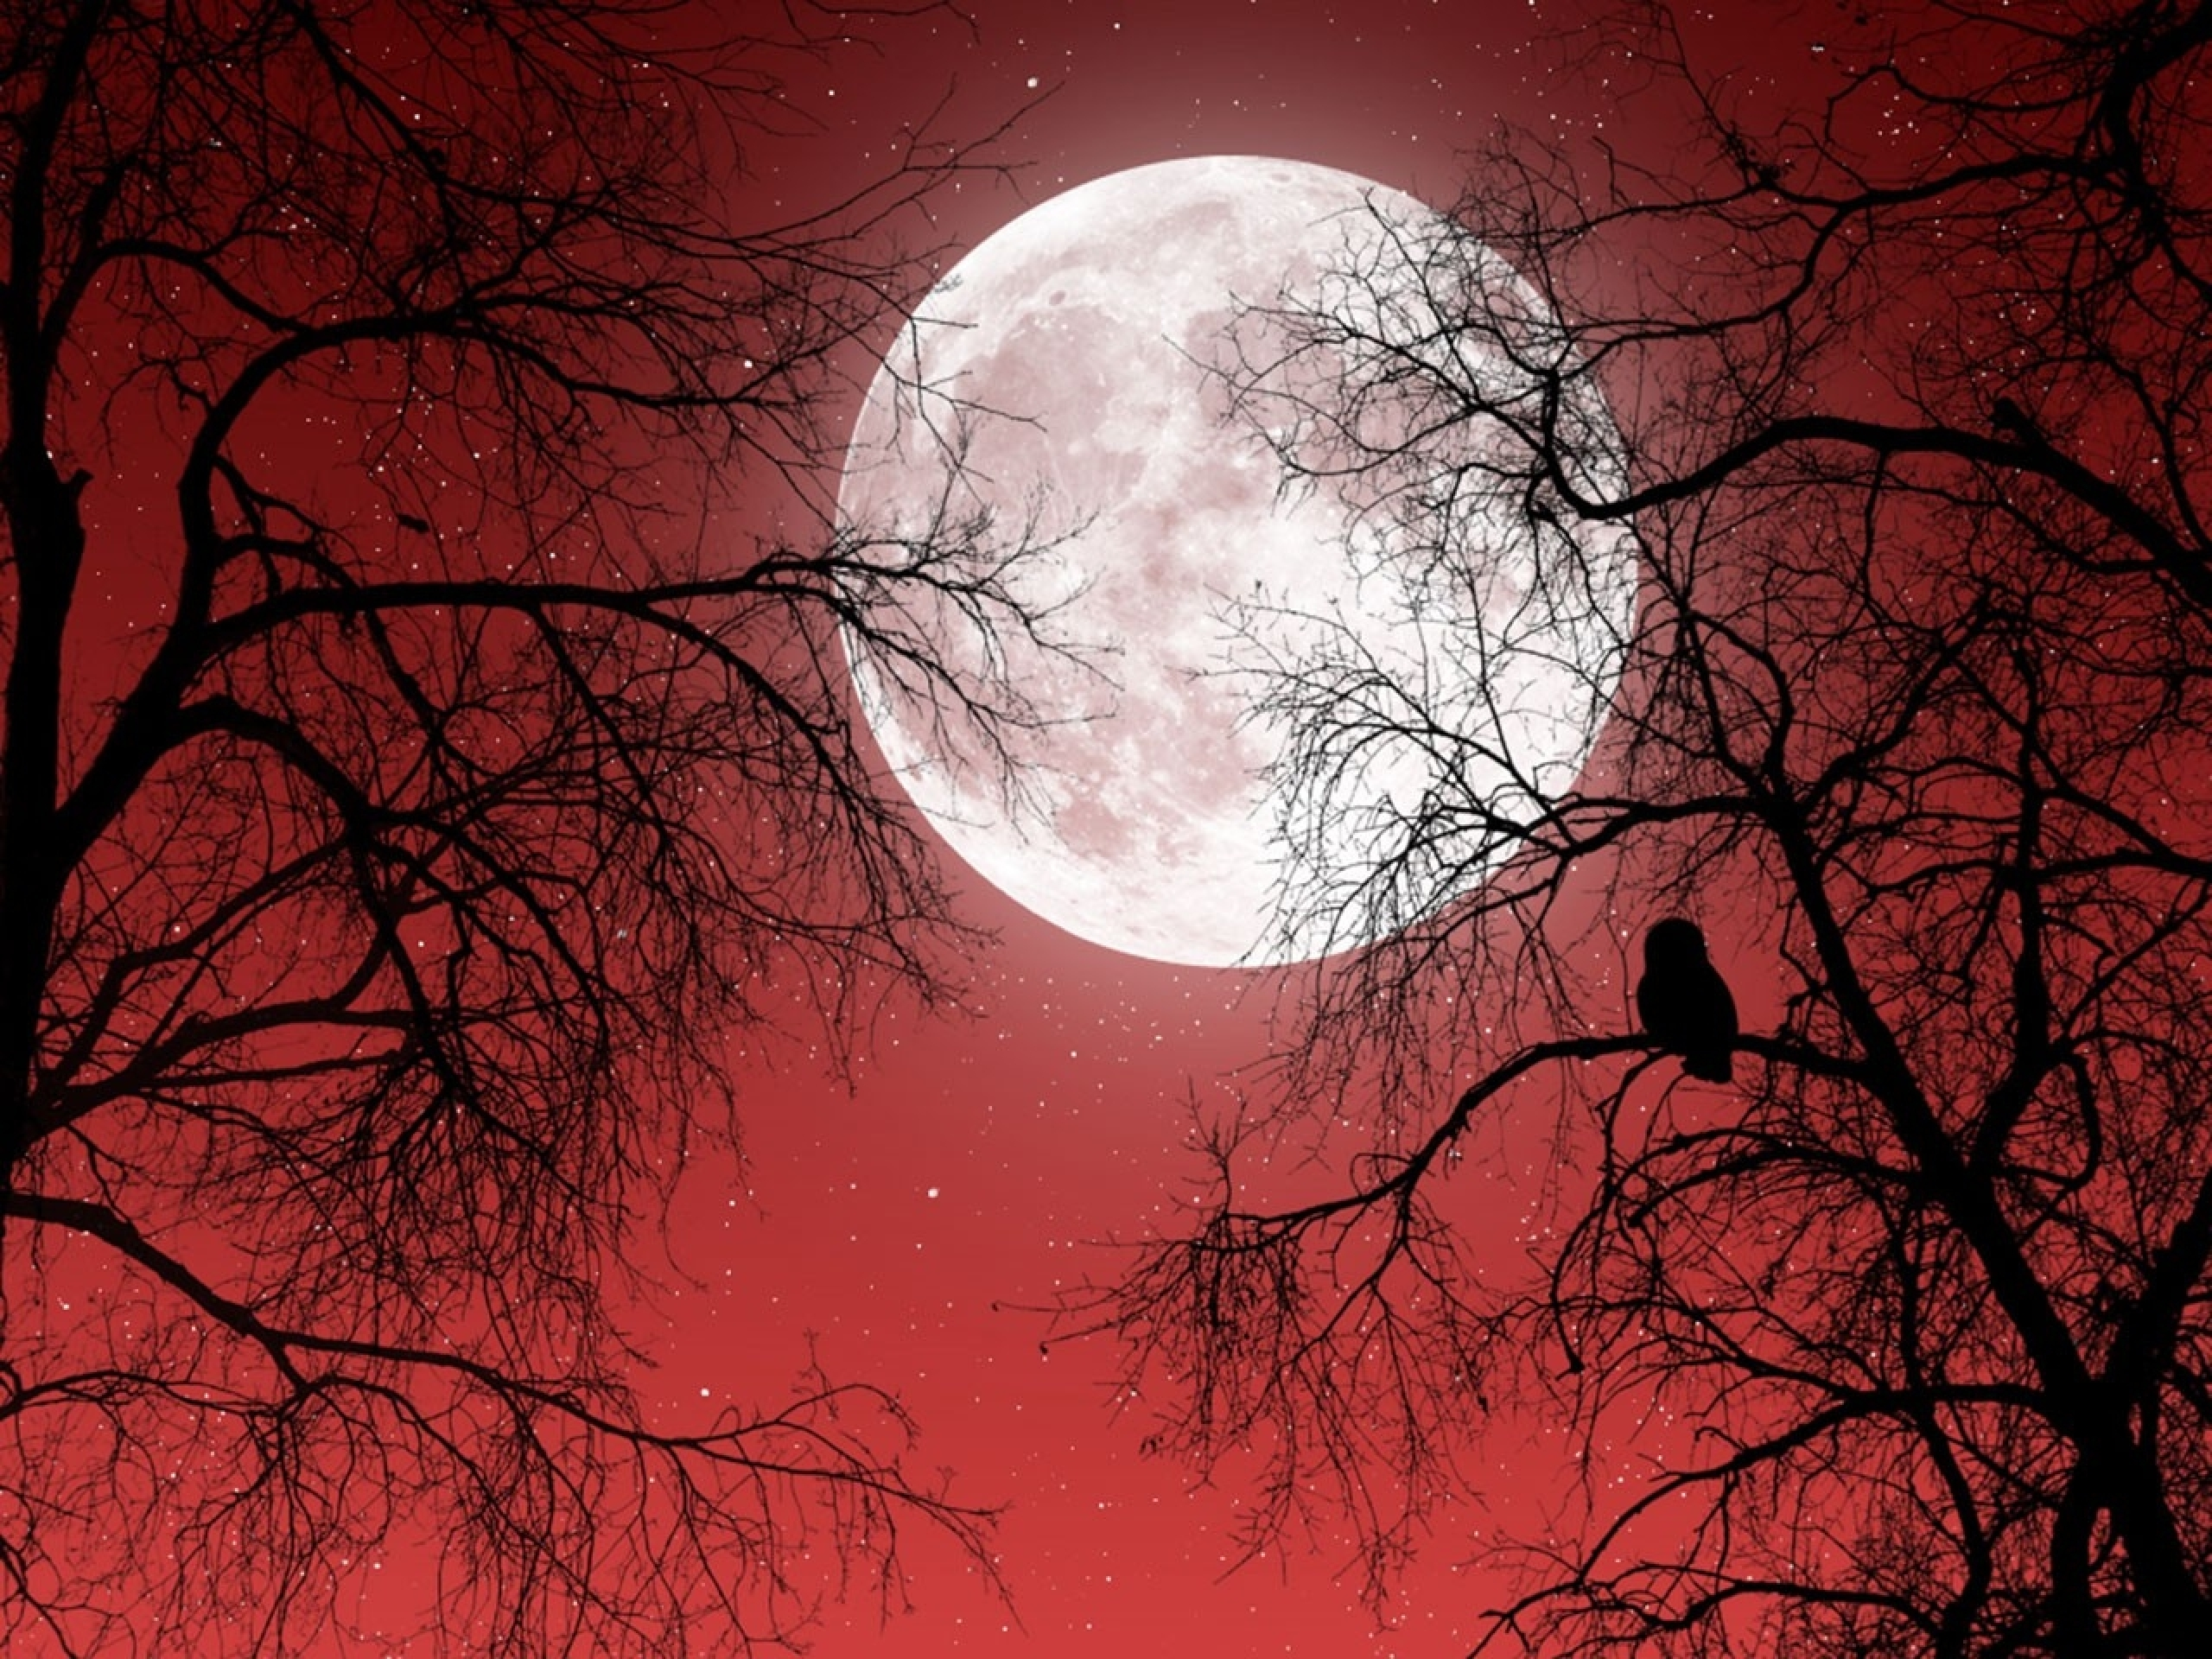 2560x1920 Full Moon Red Sky Dark Trees desktop PC and Mac wallpaper 1568